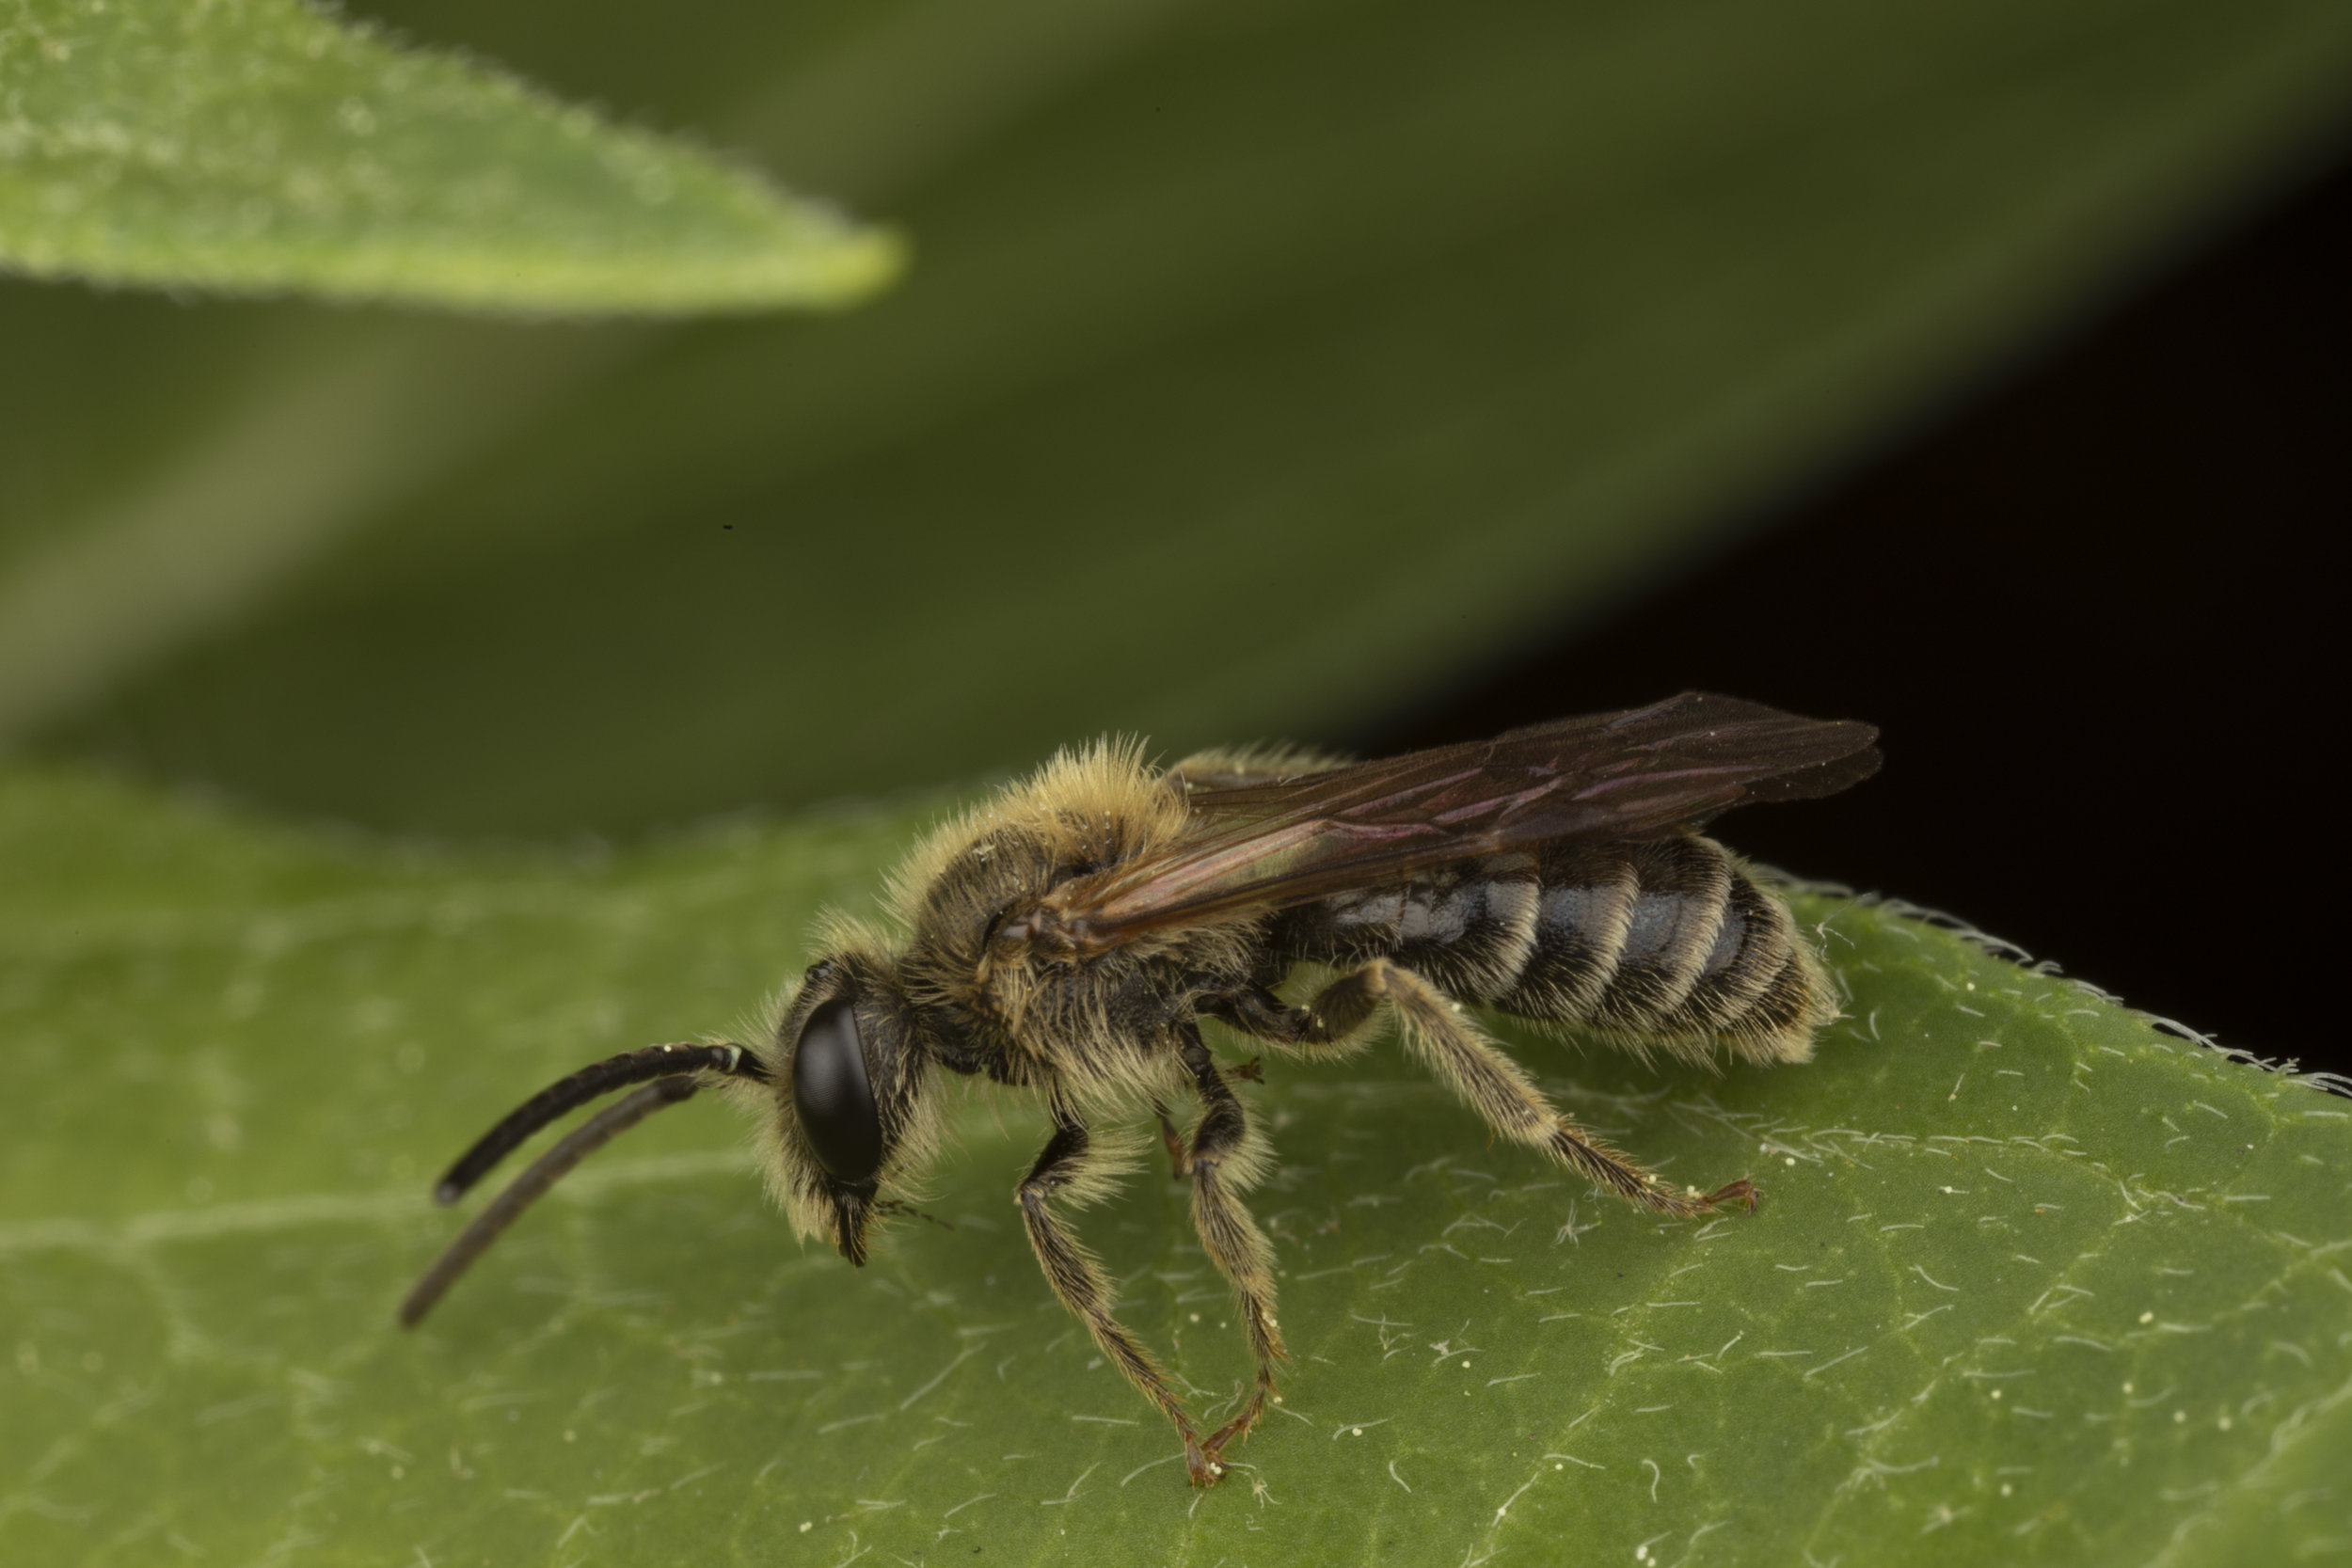 A Halictid bee, one of the many bee genera with species native to North America that we try to conserve. Photo credited to Joseph Ferraro for The Honeybee Conservancy.